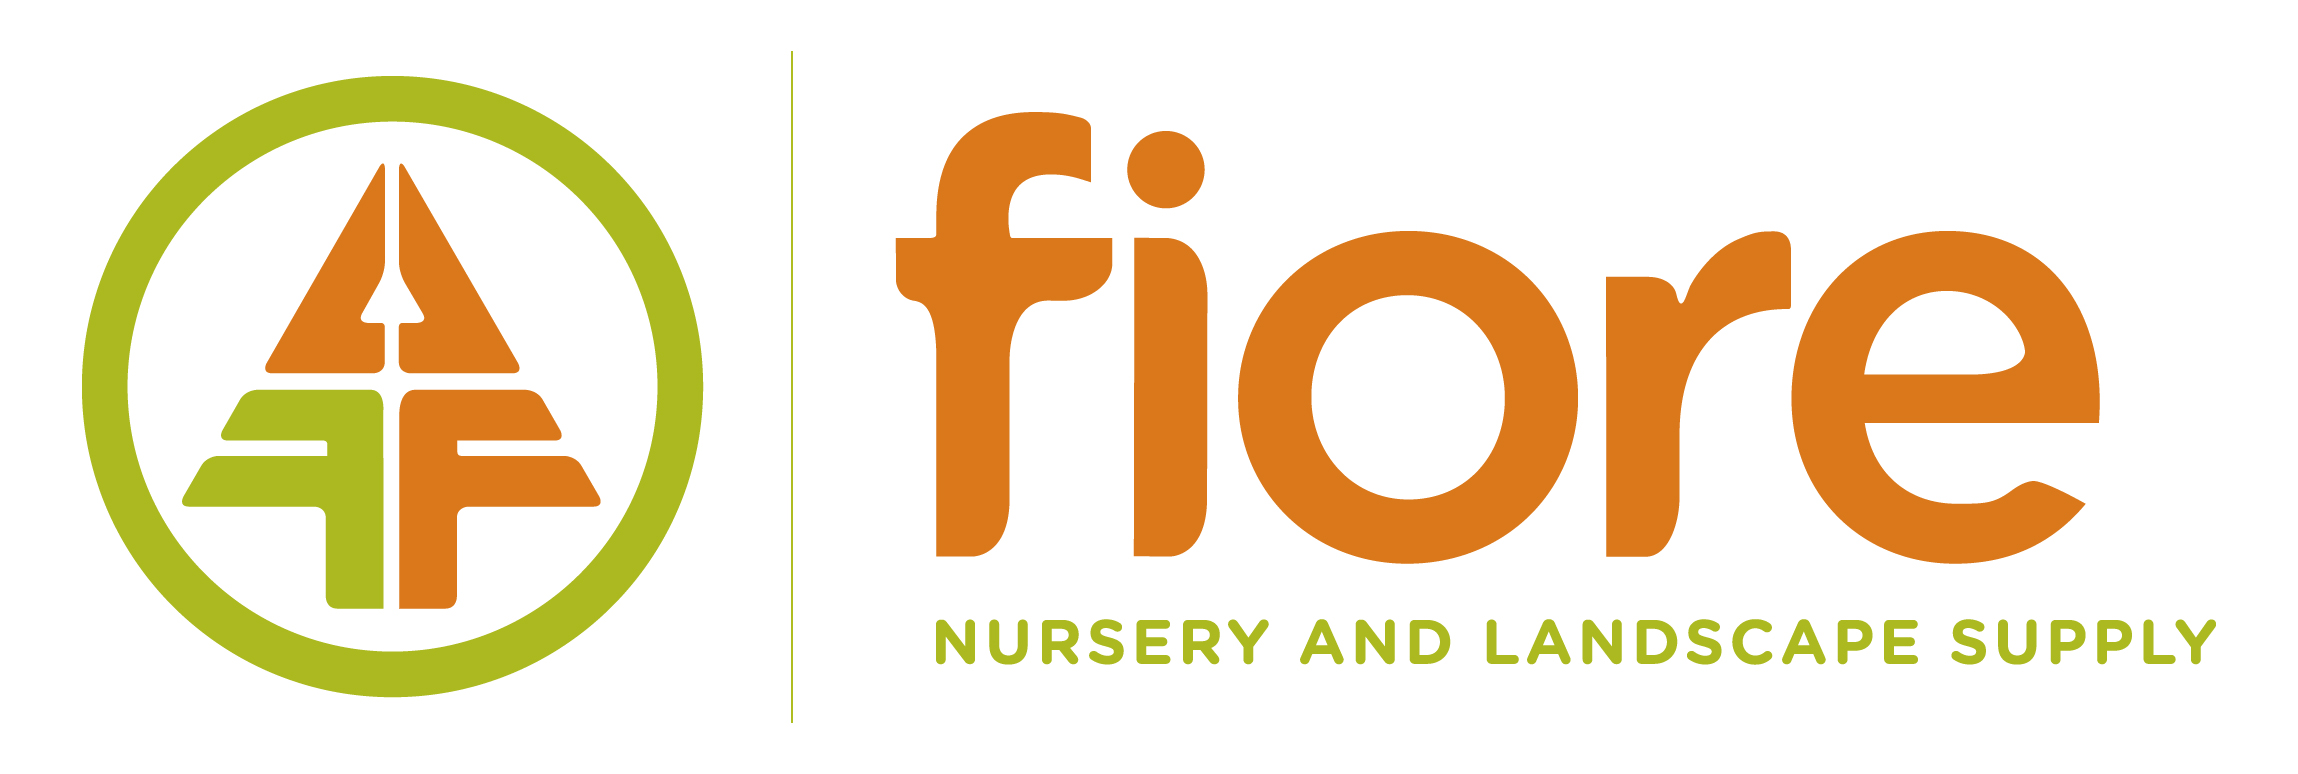 Fiore Nursery and Landscape Supply